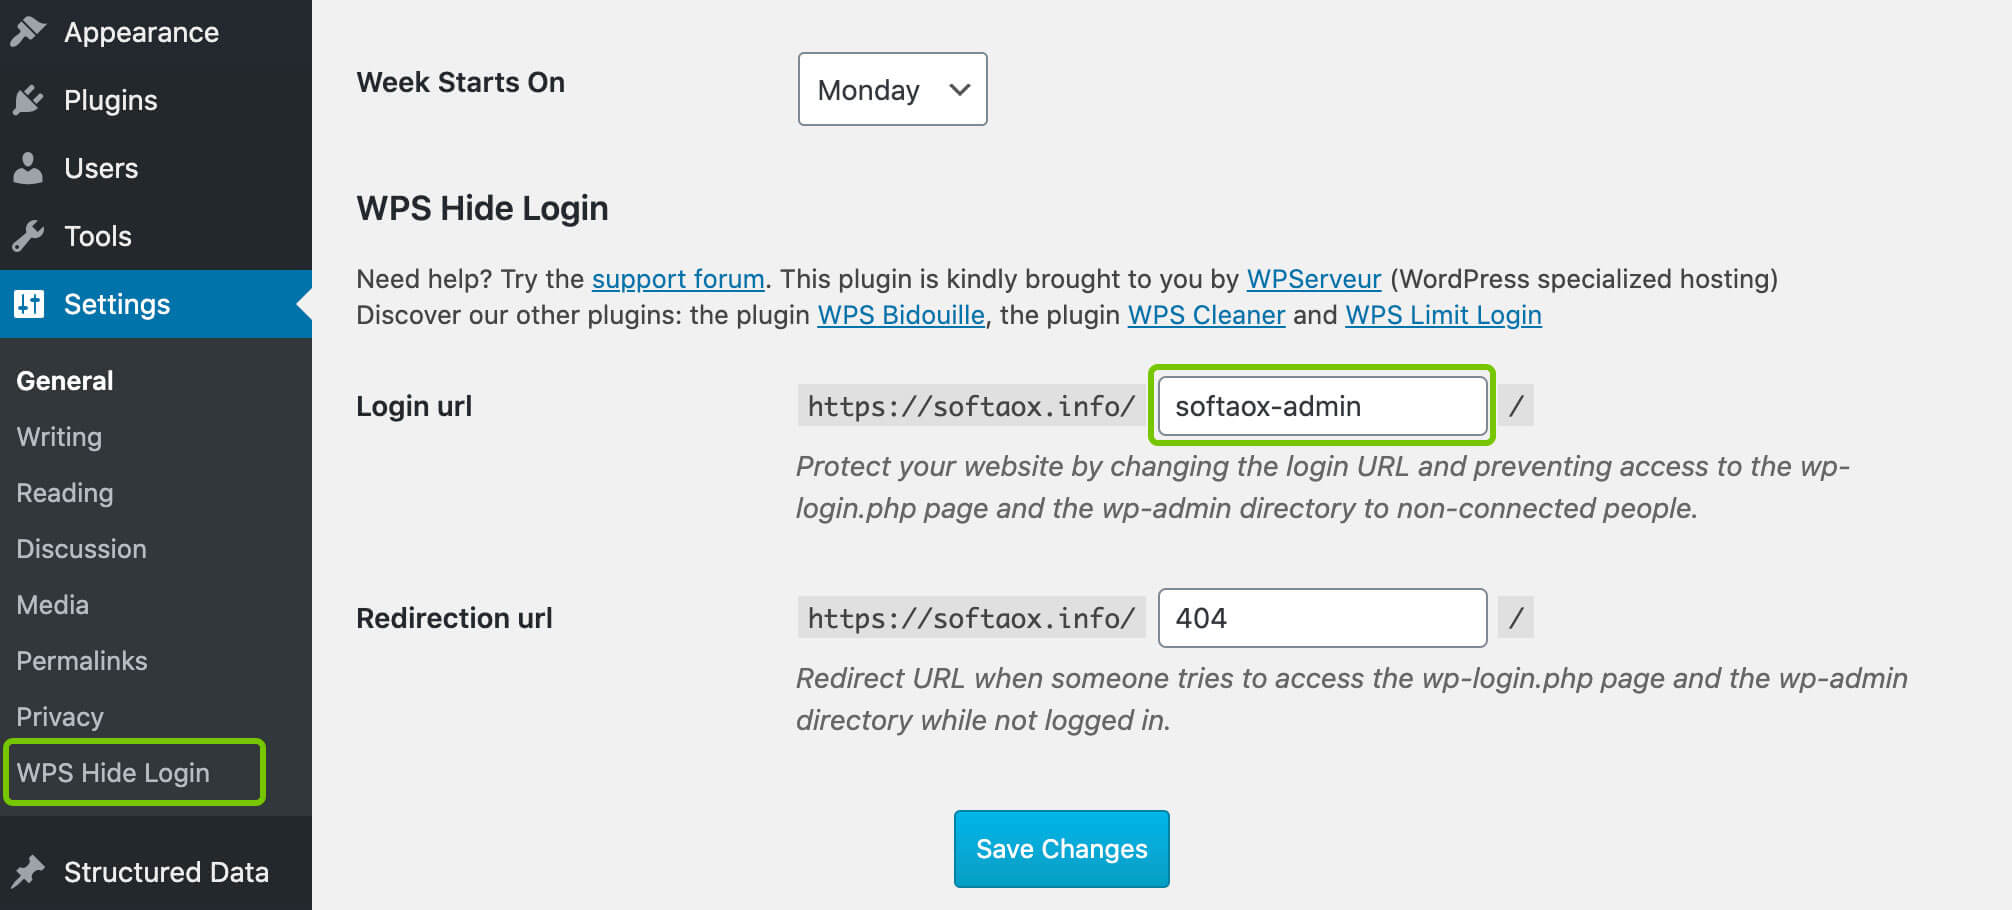 WPS Hide Login Plugin Logo path change output